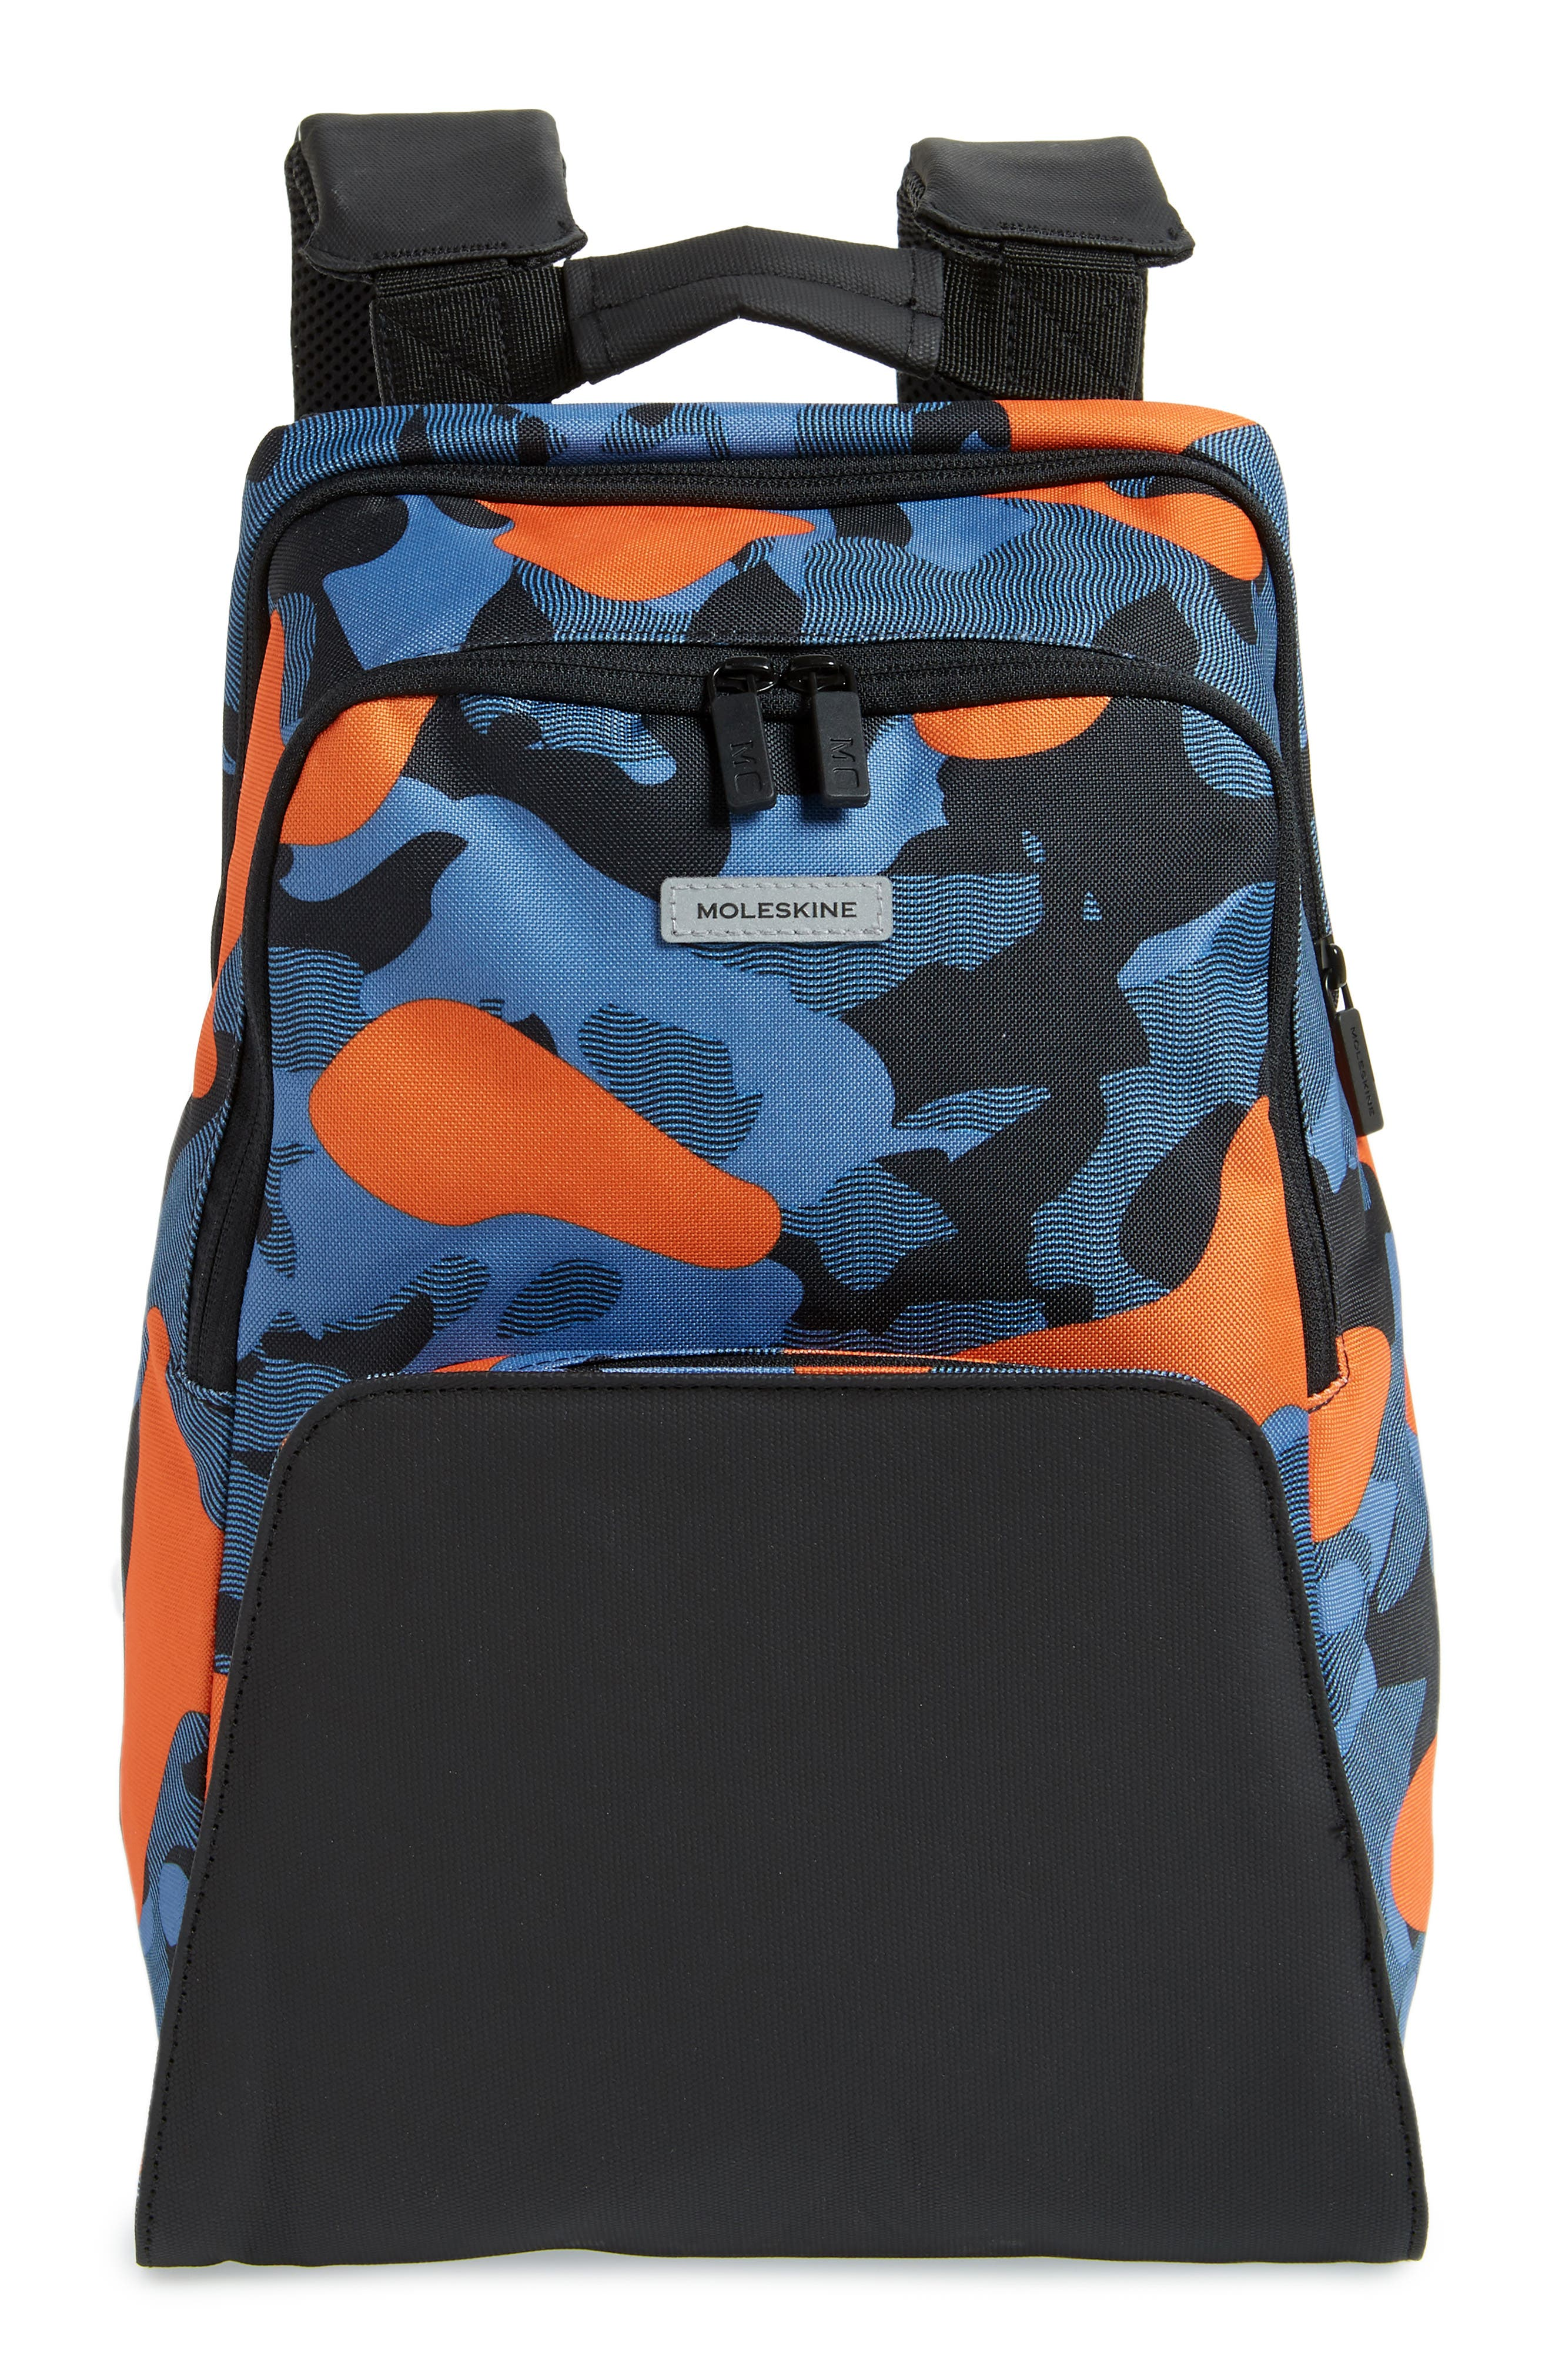 Nomad Water Resistant Backpack,                         Main,                         color, Camo Contrast Blue